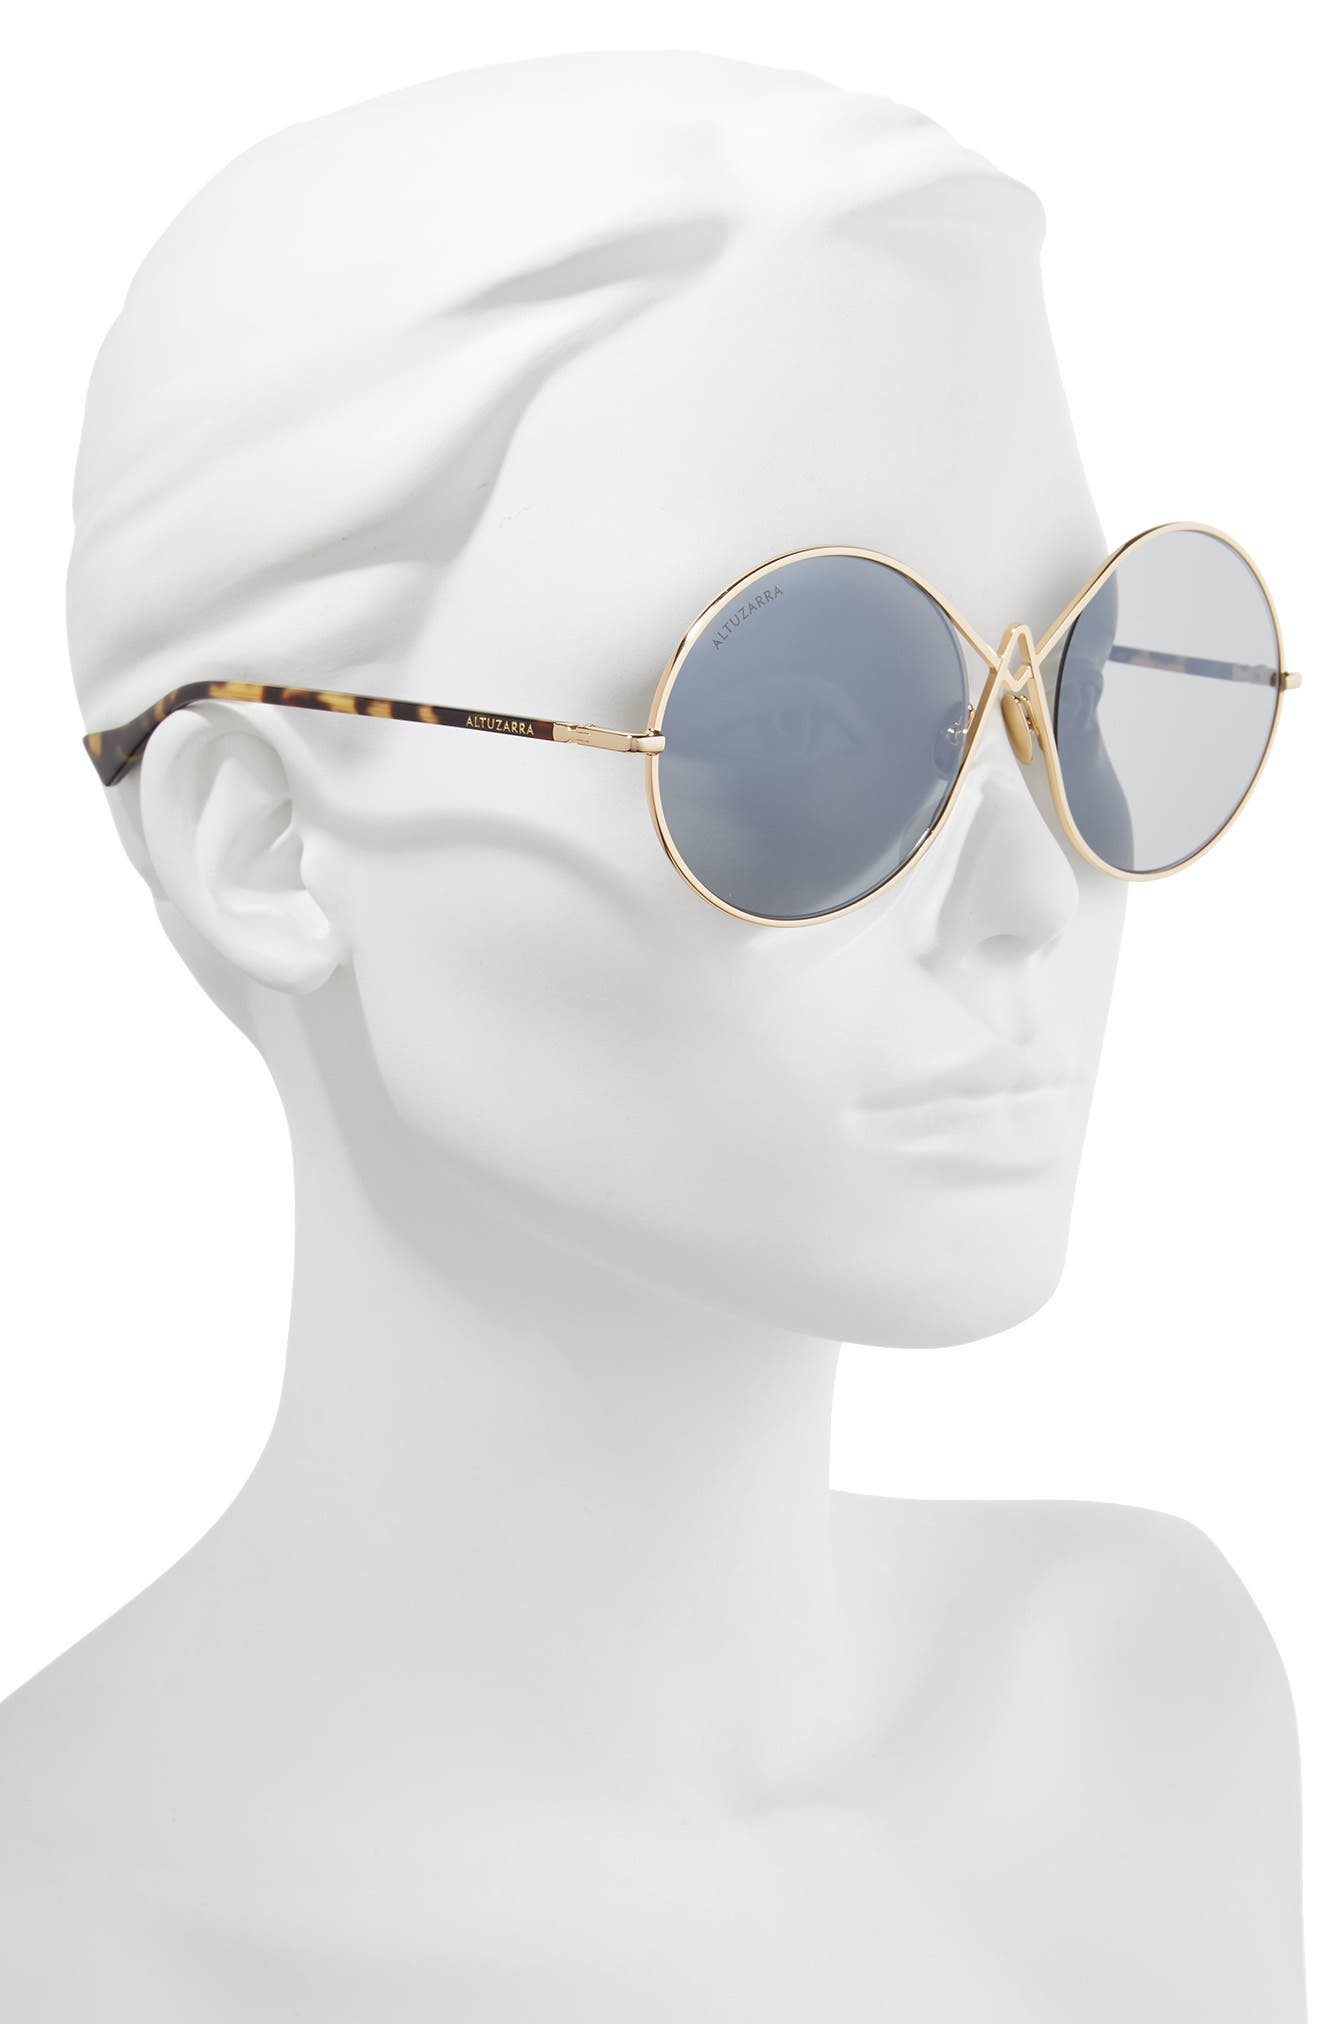 60mm Round Sunglasses,                             Alternate thumbnail 2, color,                             Gold